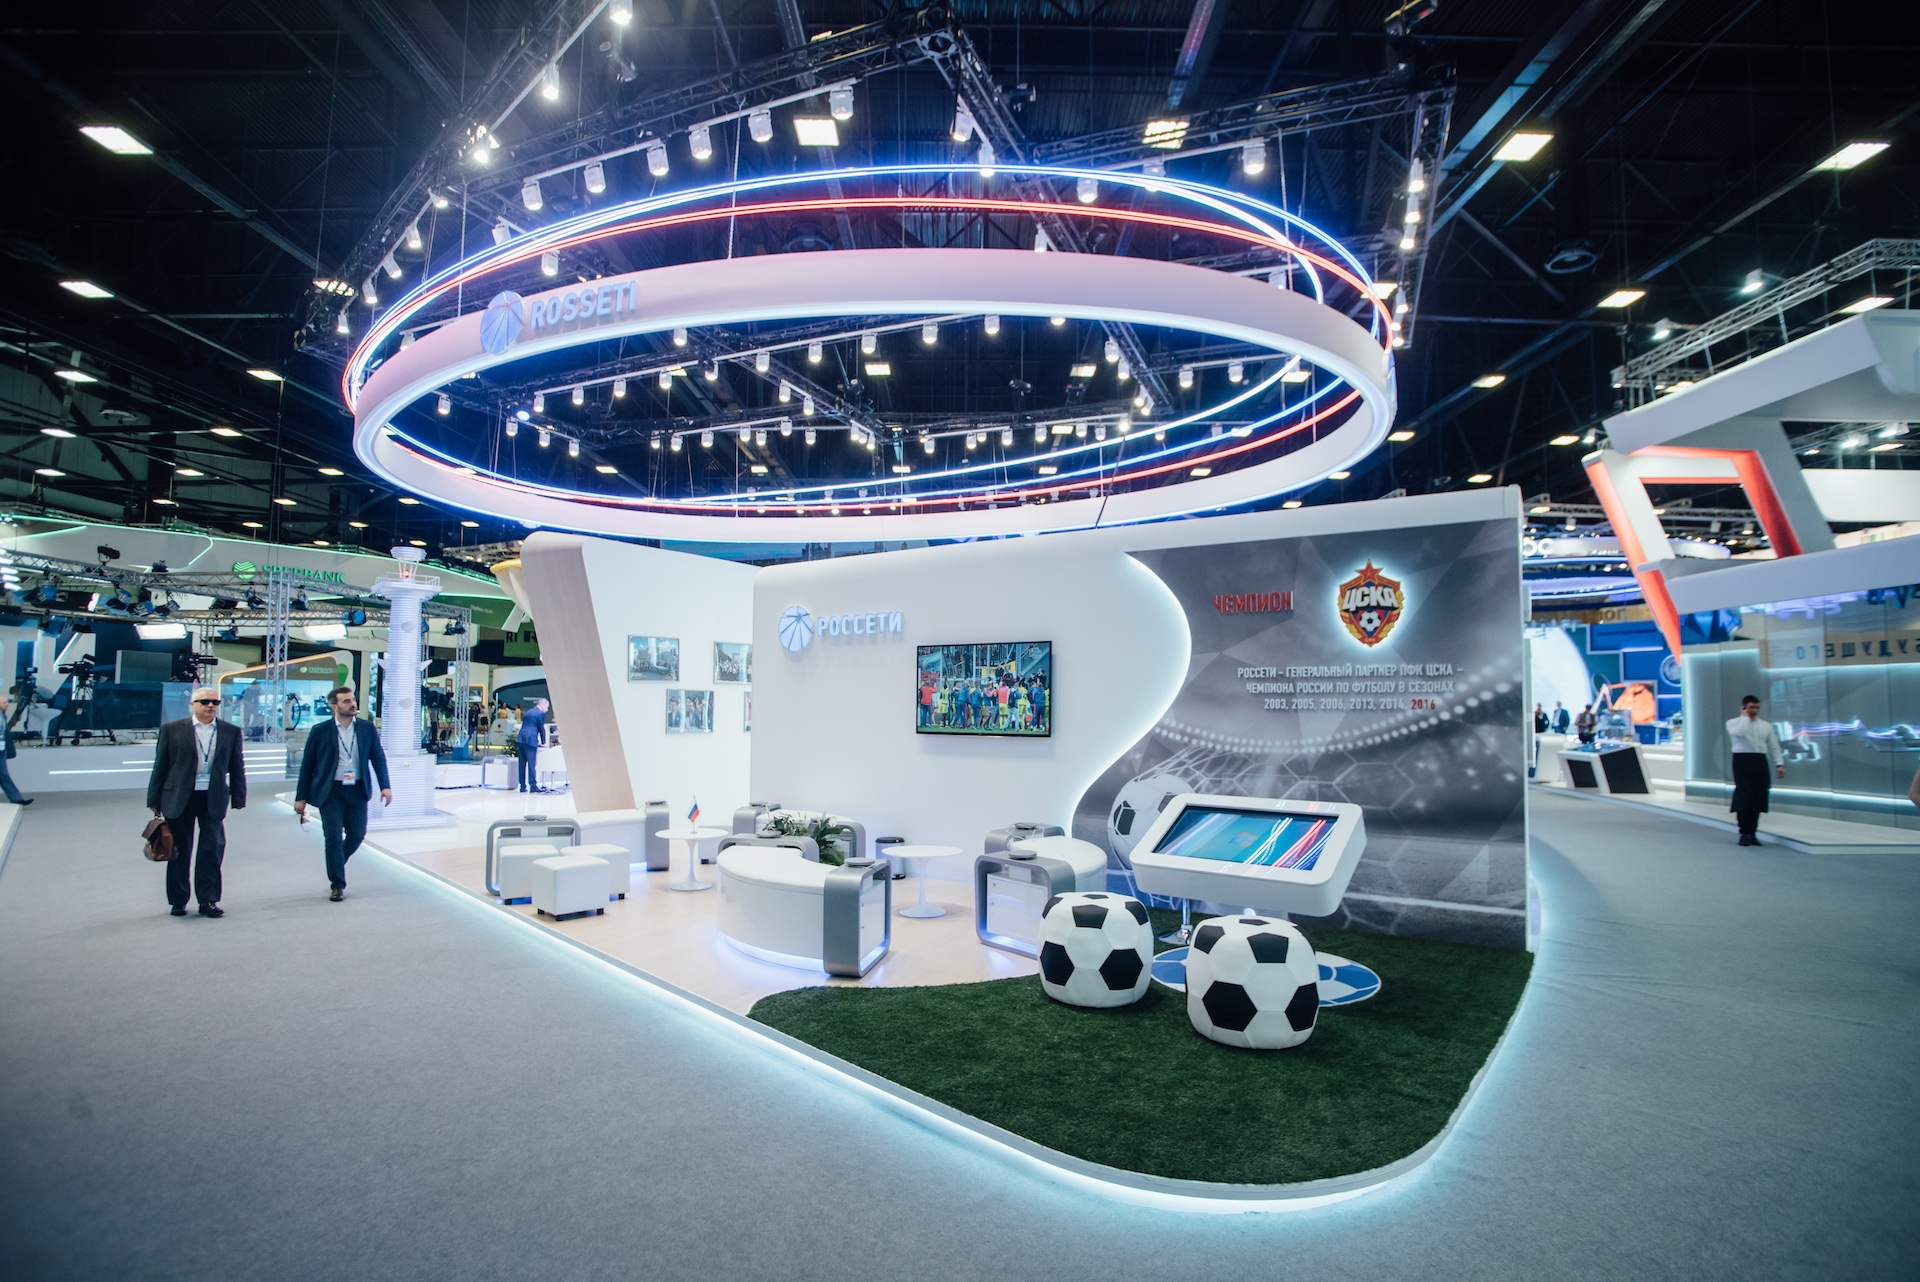 grata-adv-digital-interactiv-spief-2016-rosseti-4